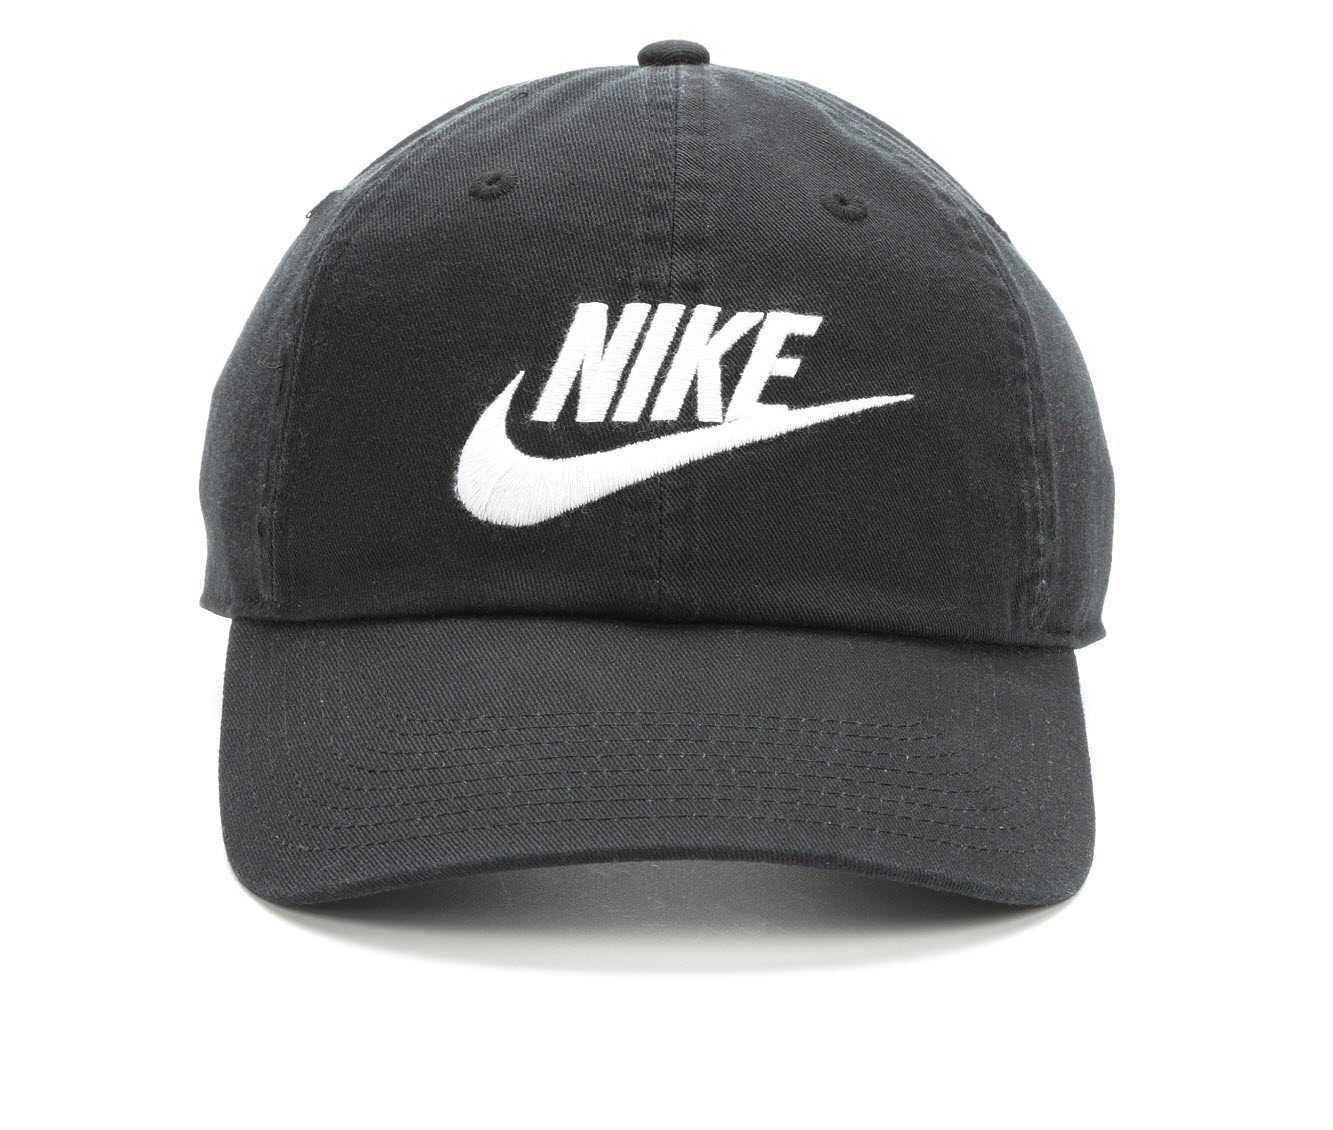 Nike Futura Washed Hat (Black - Size UNSZ) 1663289